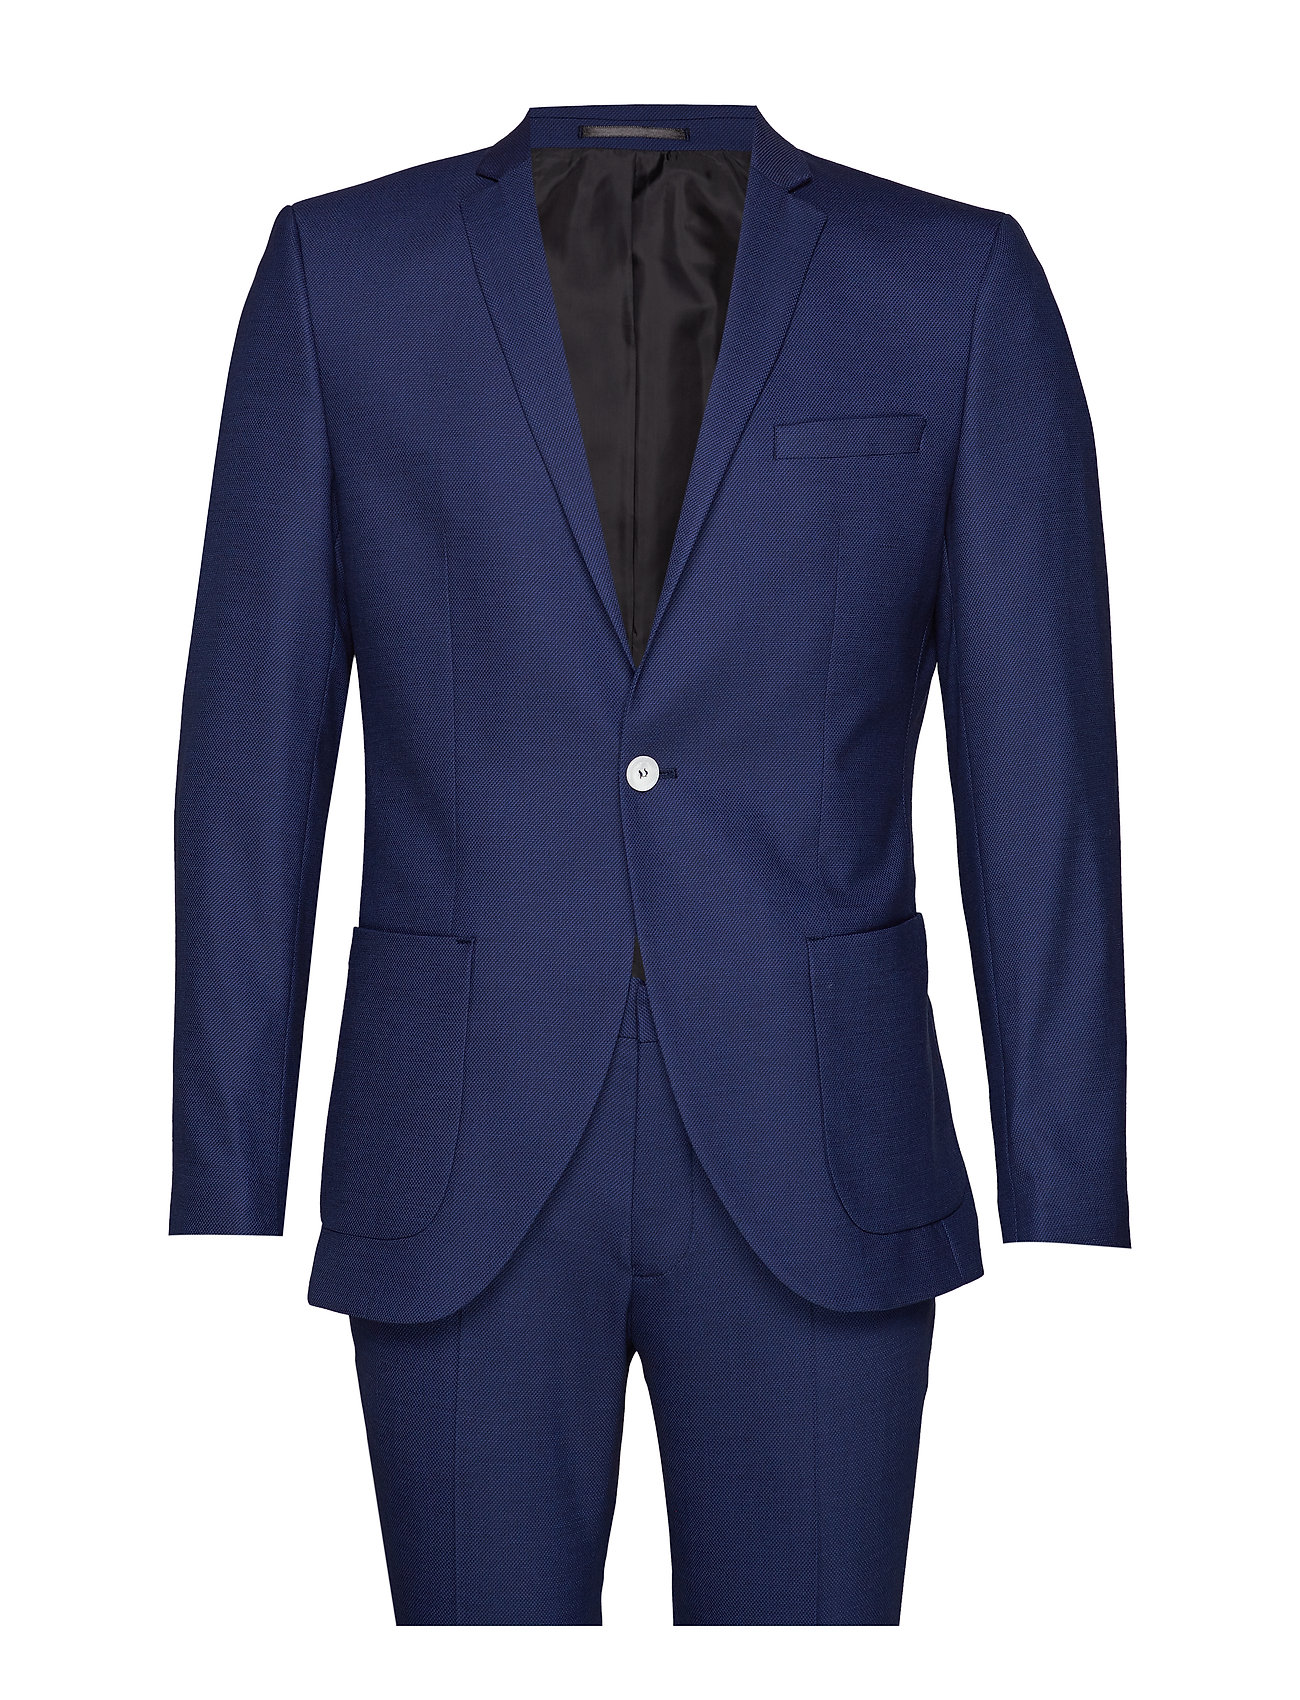 Selected Homme SLHSLIM-MATTNATE DK BLUE SUIT B EX - DARK BLUE